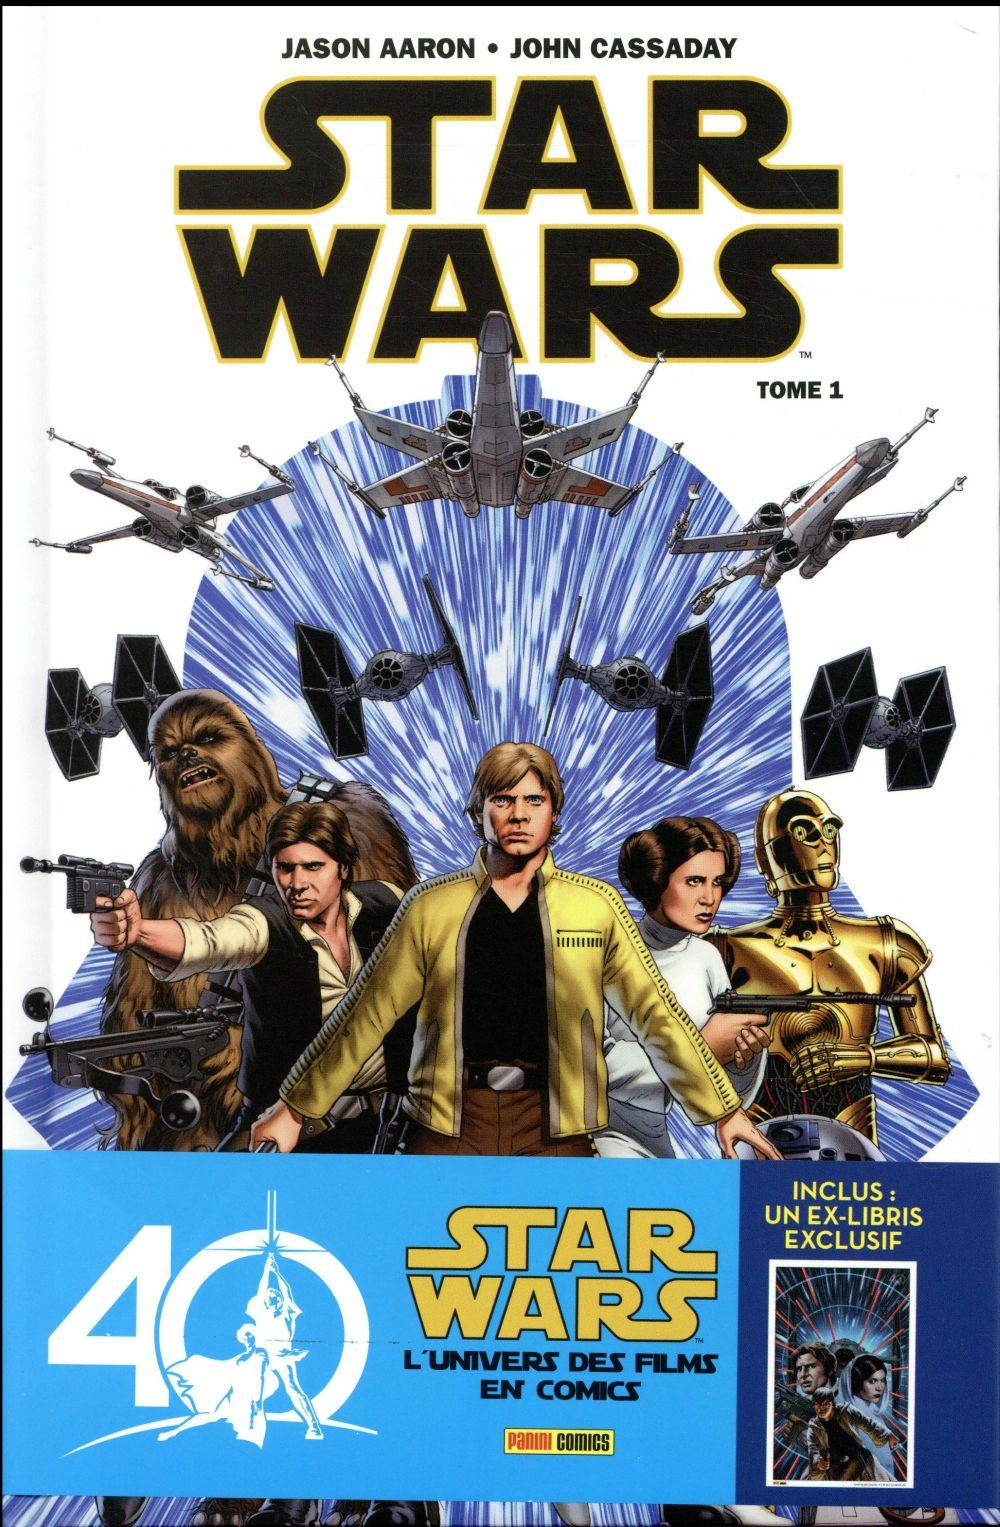 Star Wars T.1  - Jason Aaron  - John Cassaday